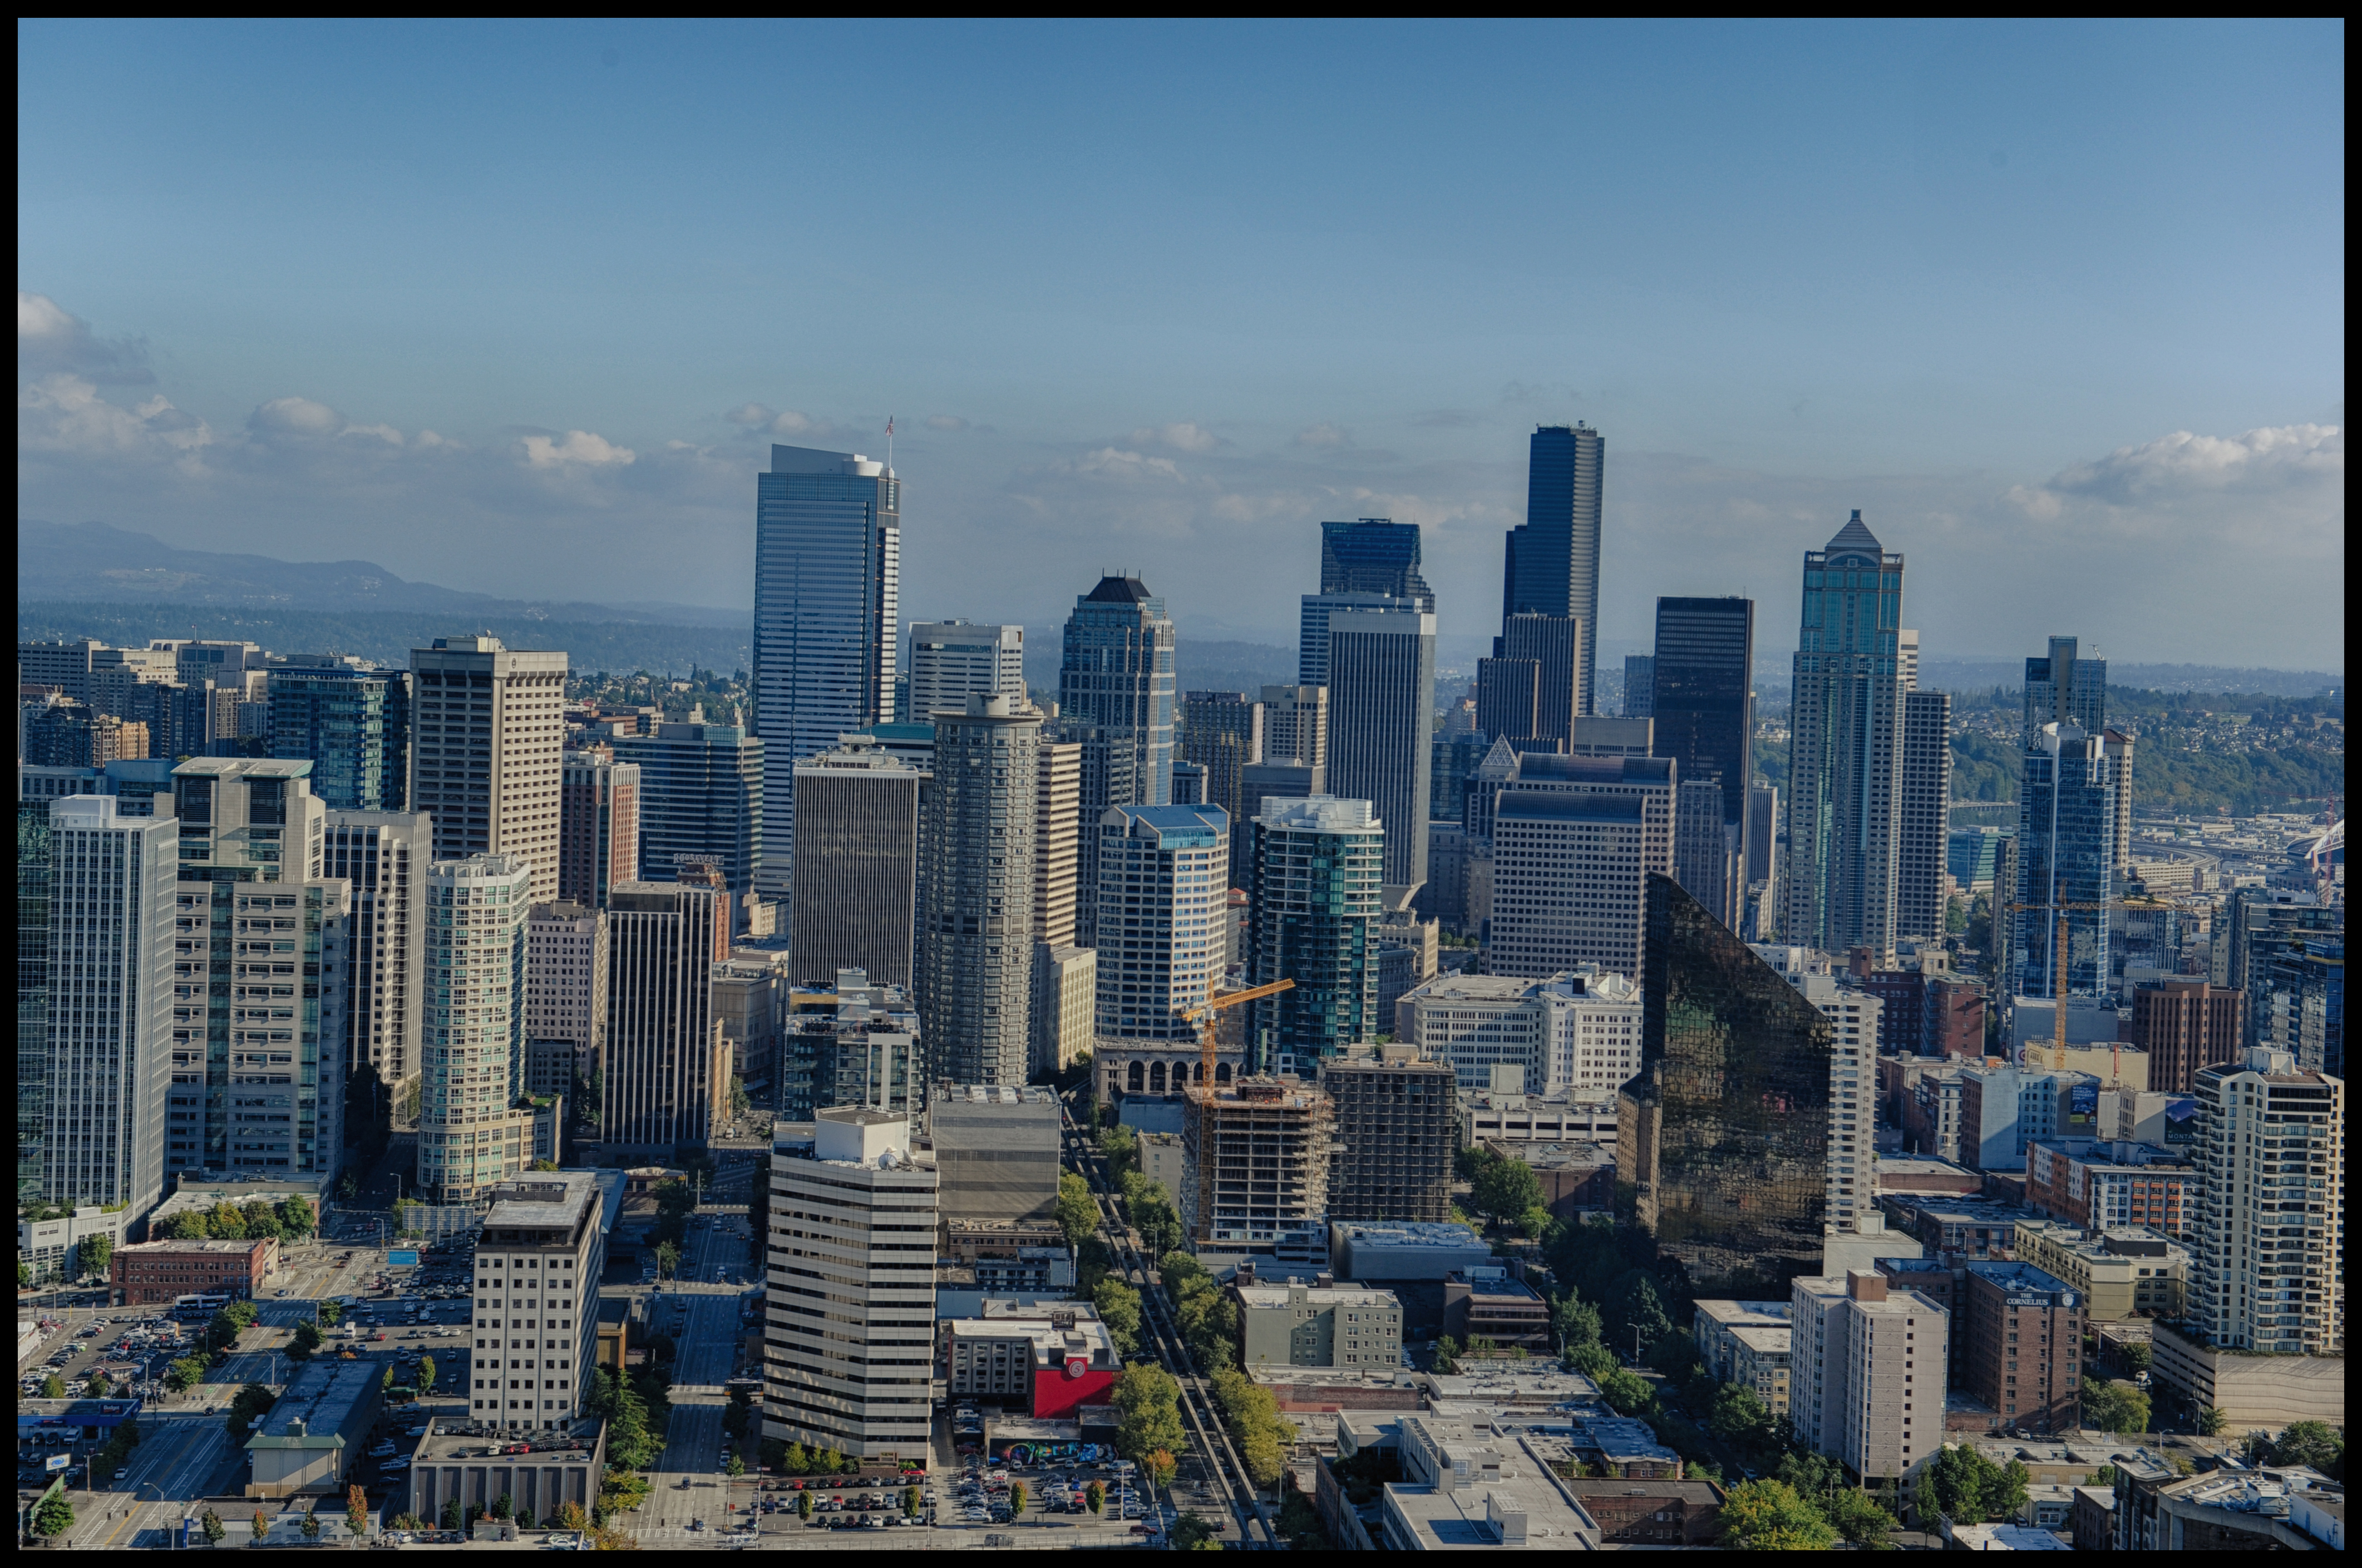 Frankie Foto » Awesome day in Seattle, now on to Portlandia